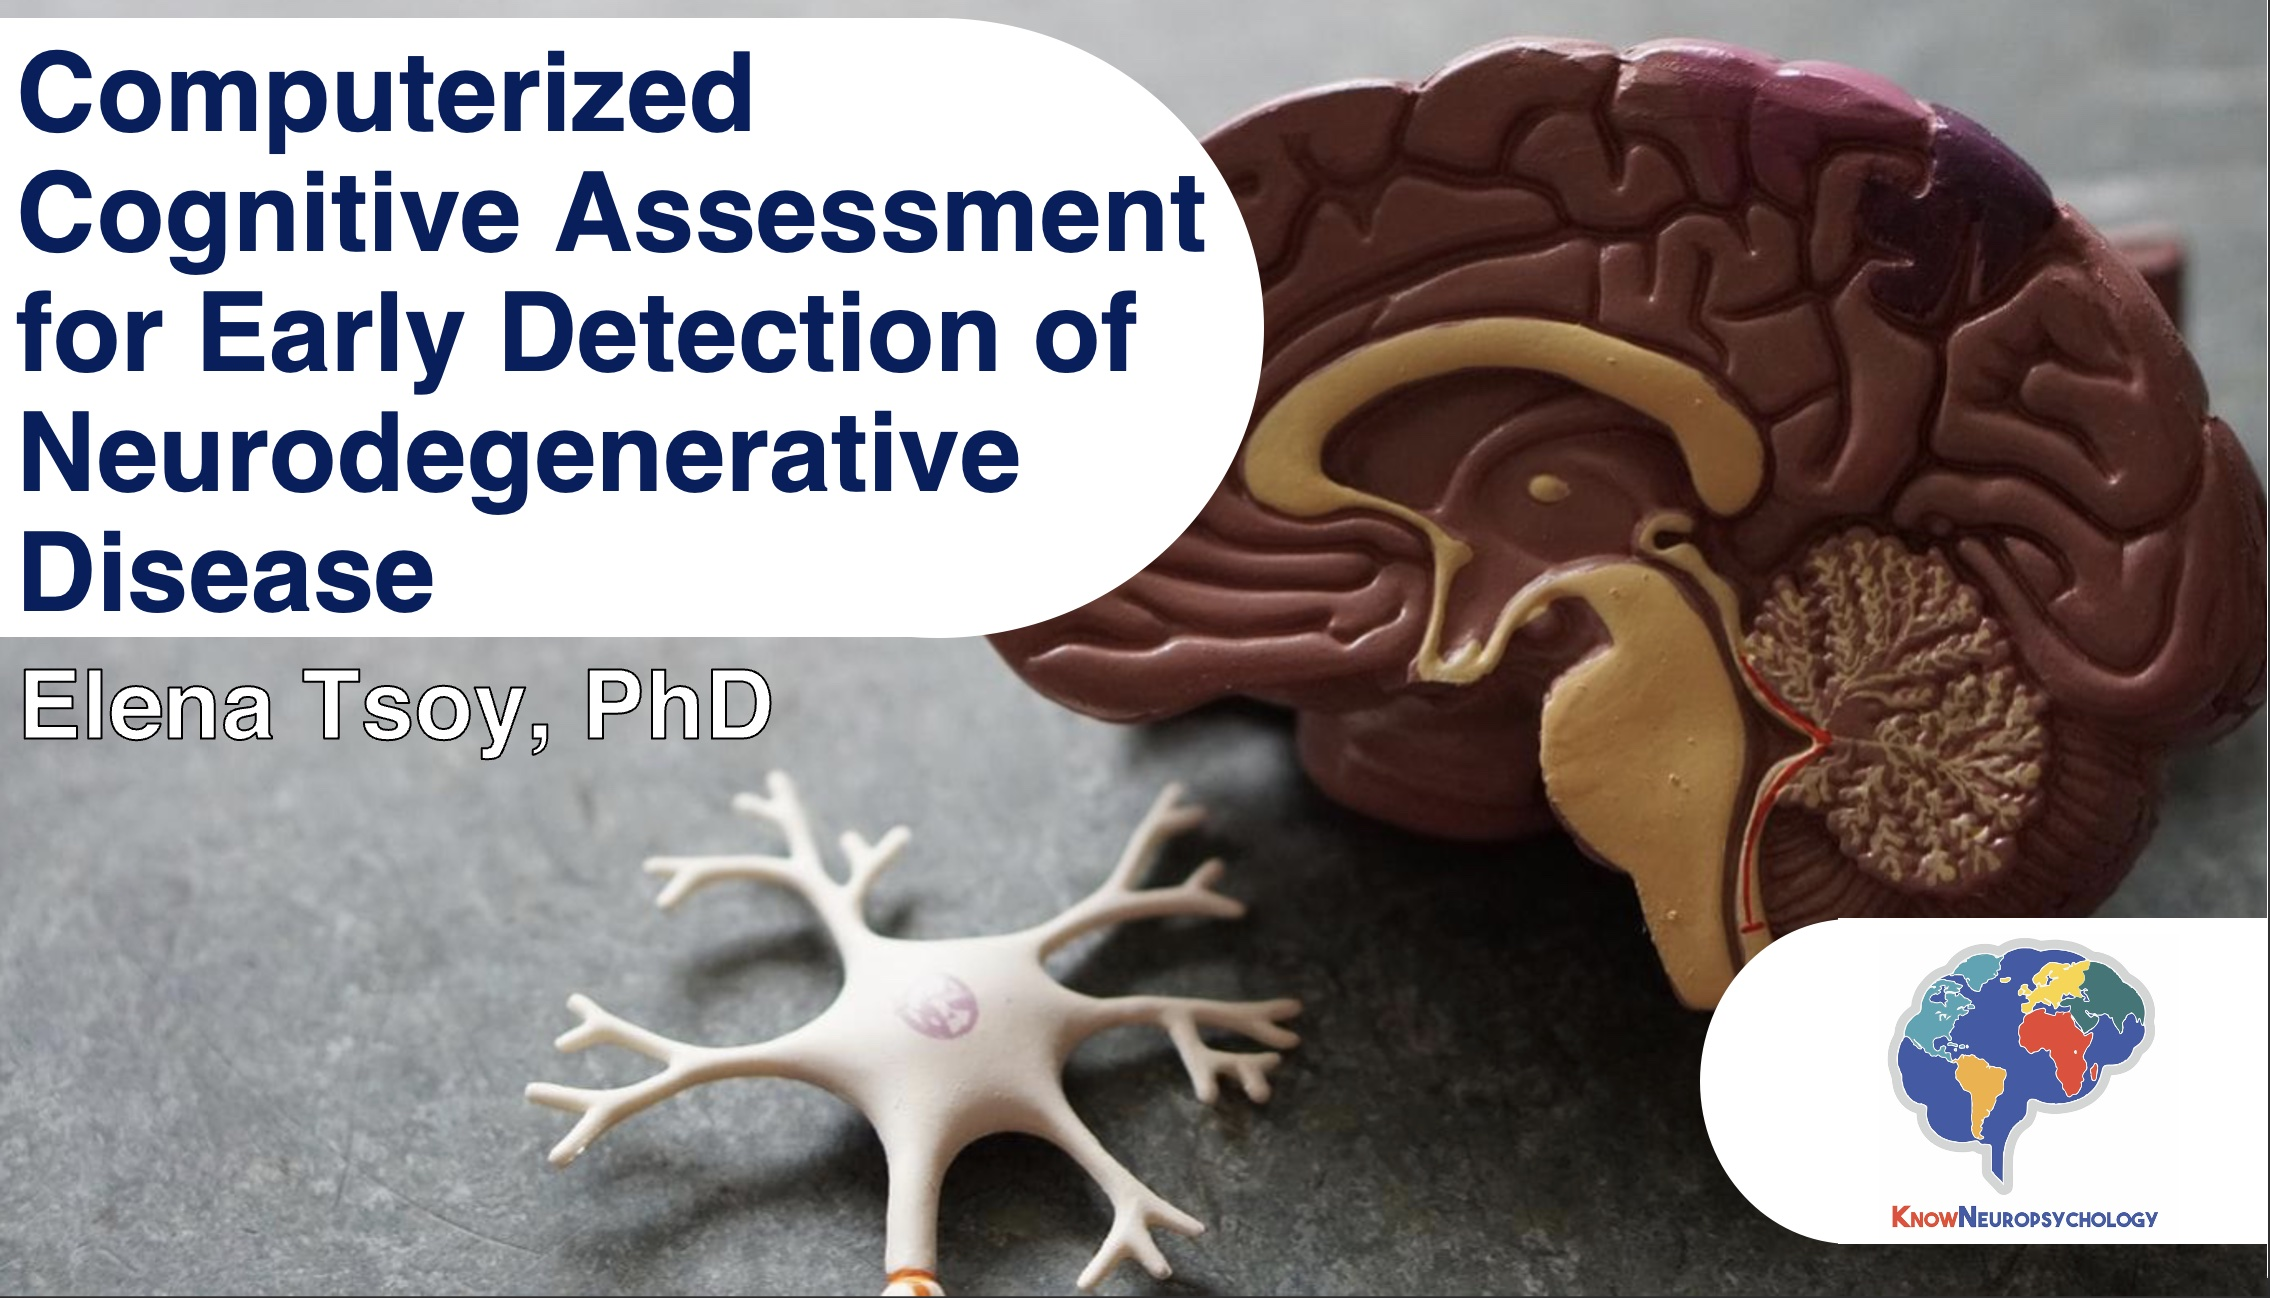 Computerized Cognitive Assessment for the early detection of neurodegenerative disease with Dr. Elena Tsoy